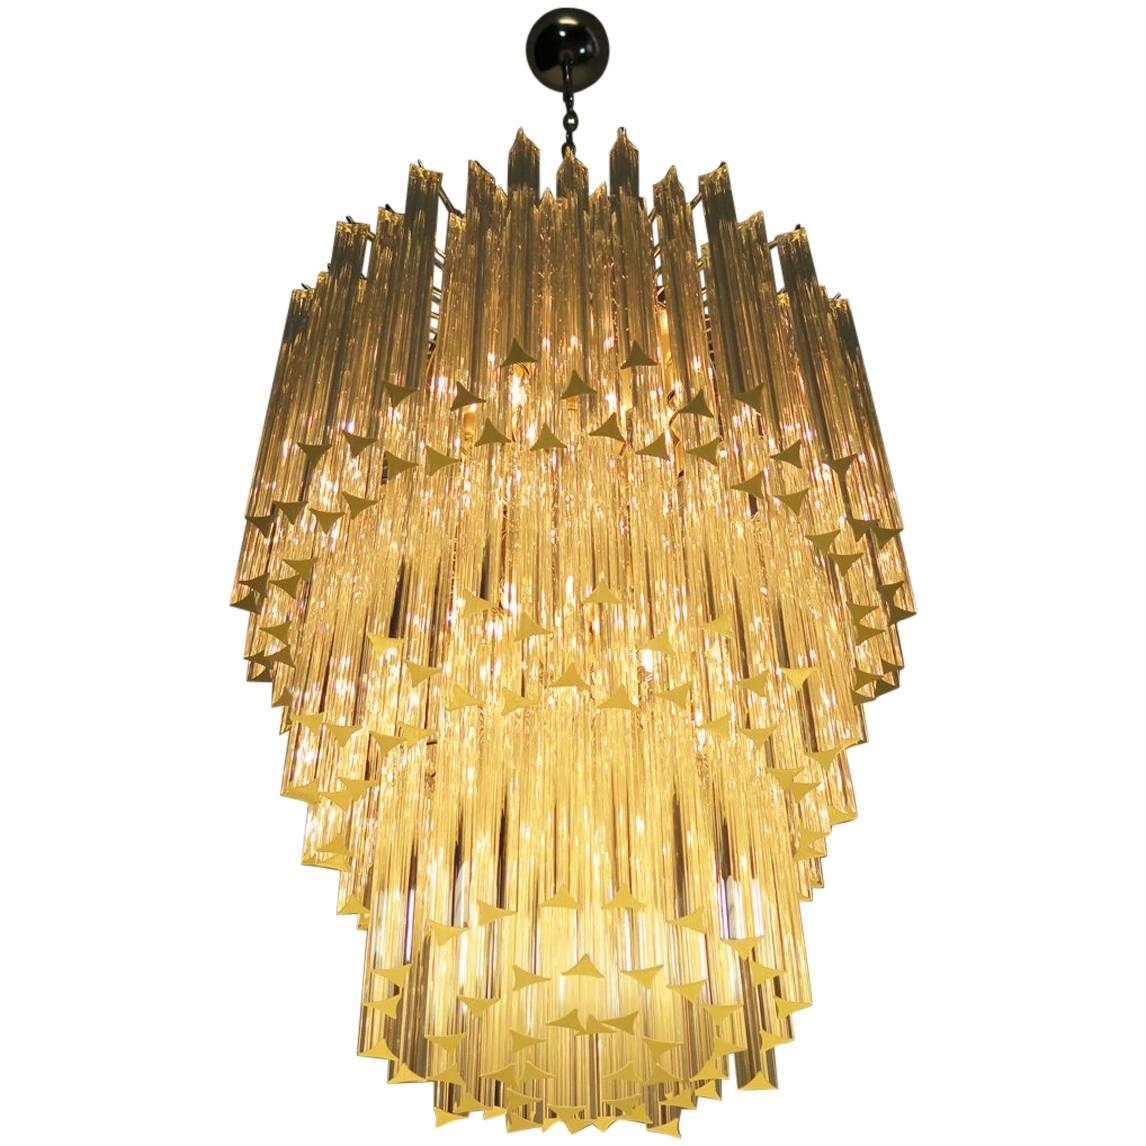 Huge Murano Chandelier Transparent Triedri, 184 Prism, Arianna Model